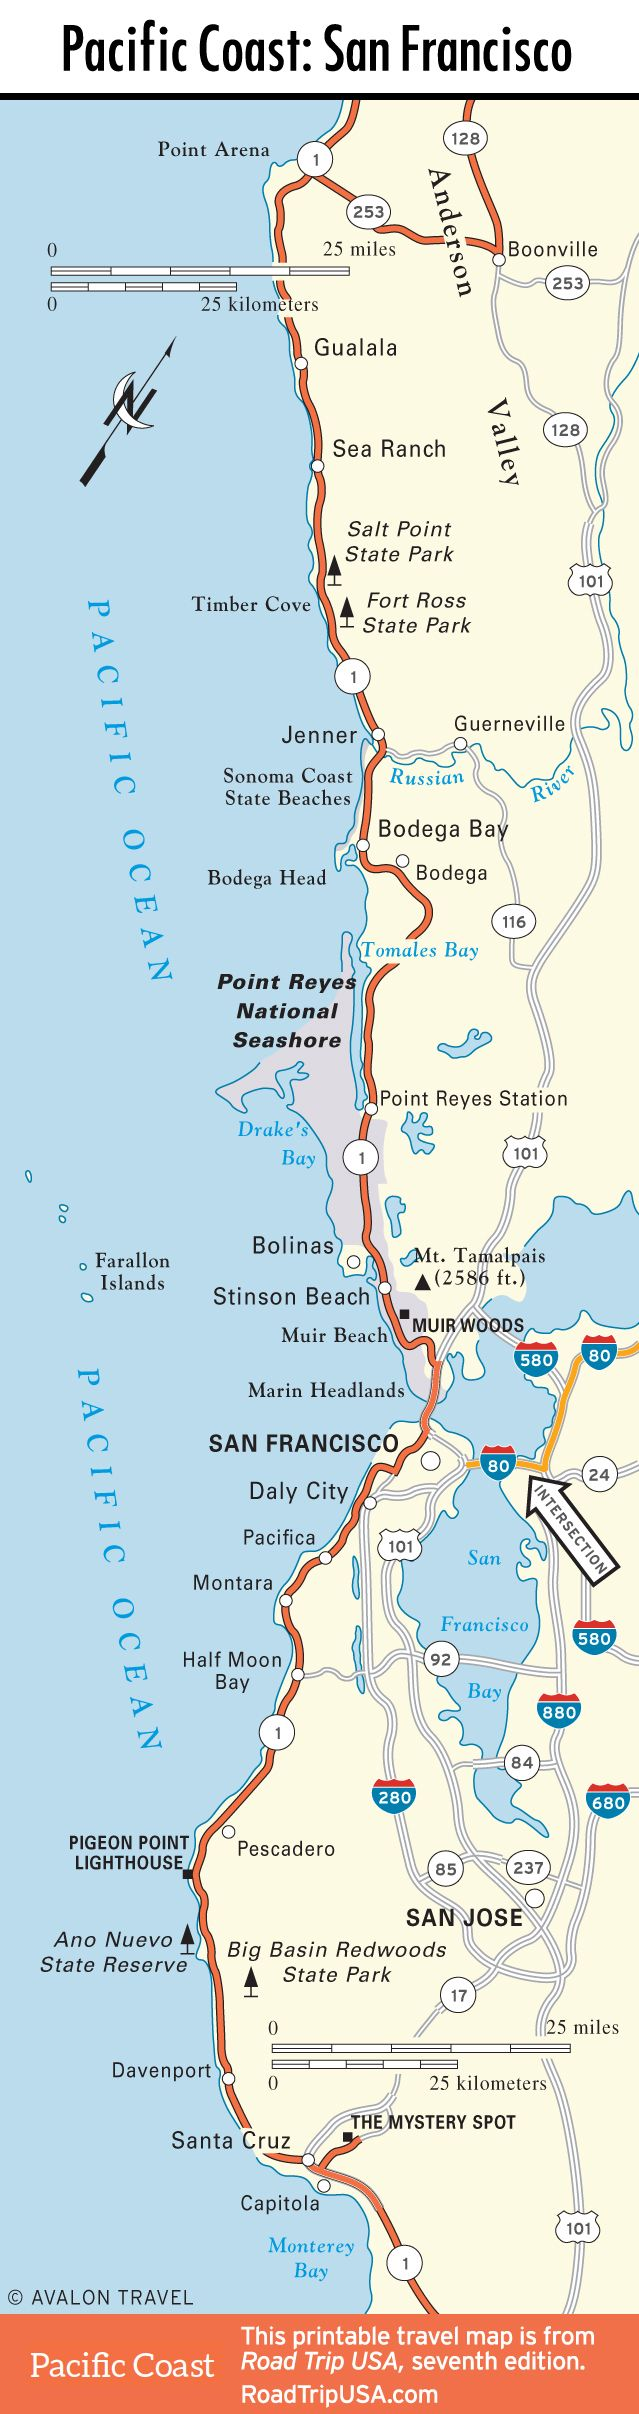 California Coastal Highway Map on